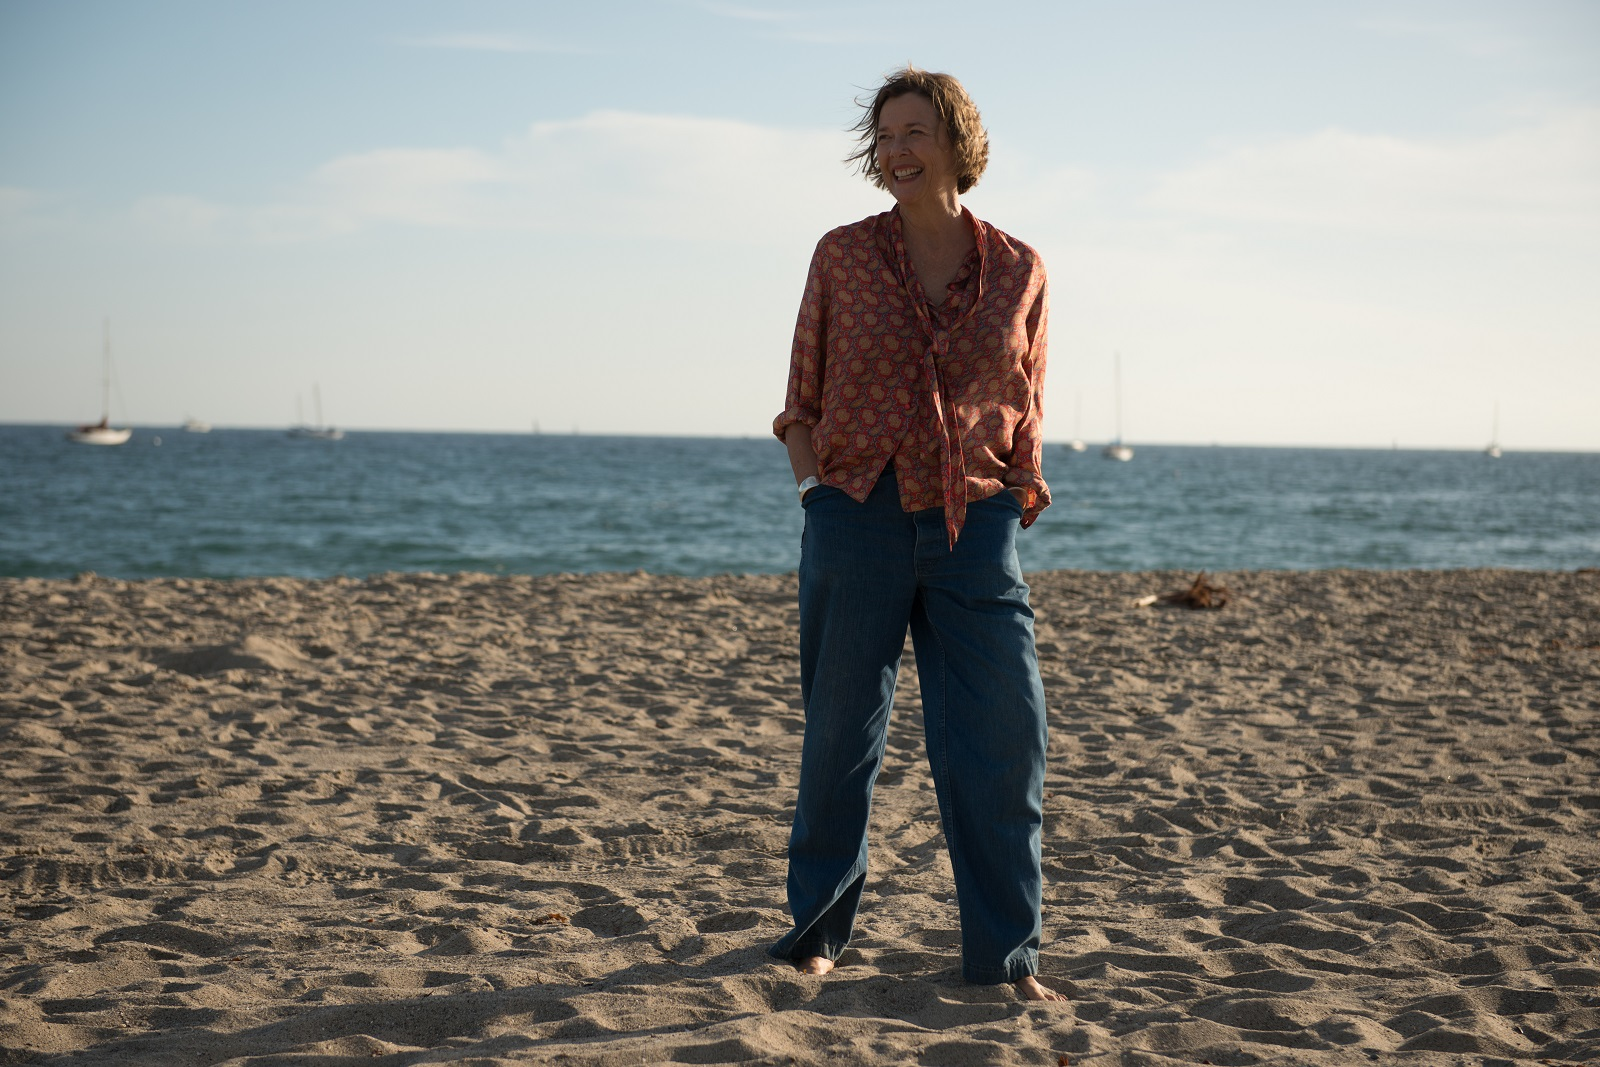 Annette Bening plays a single mother raising a teen son in '20th Century Women.'